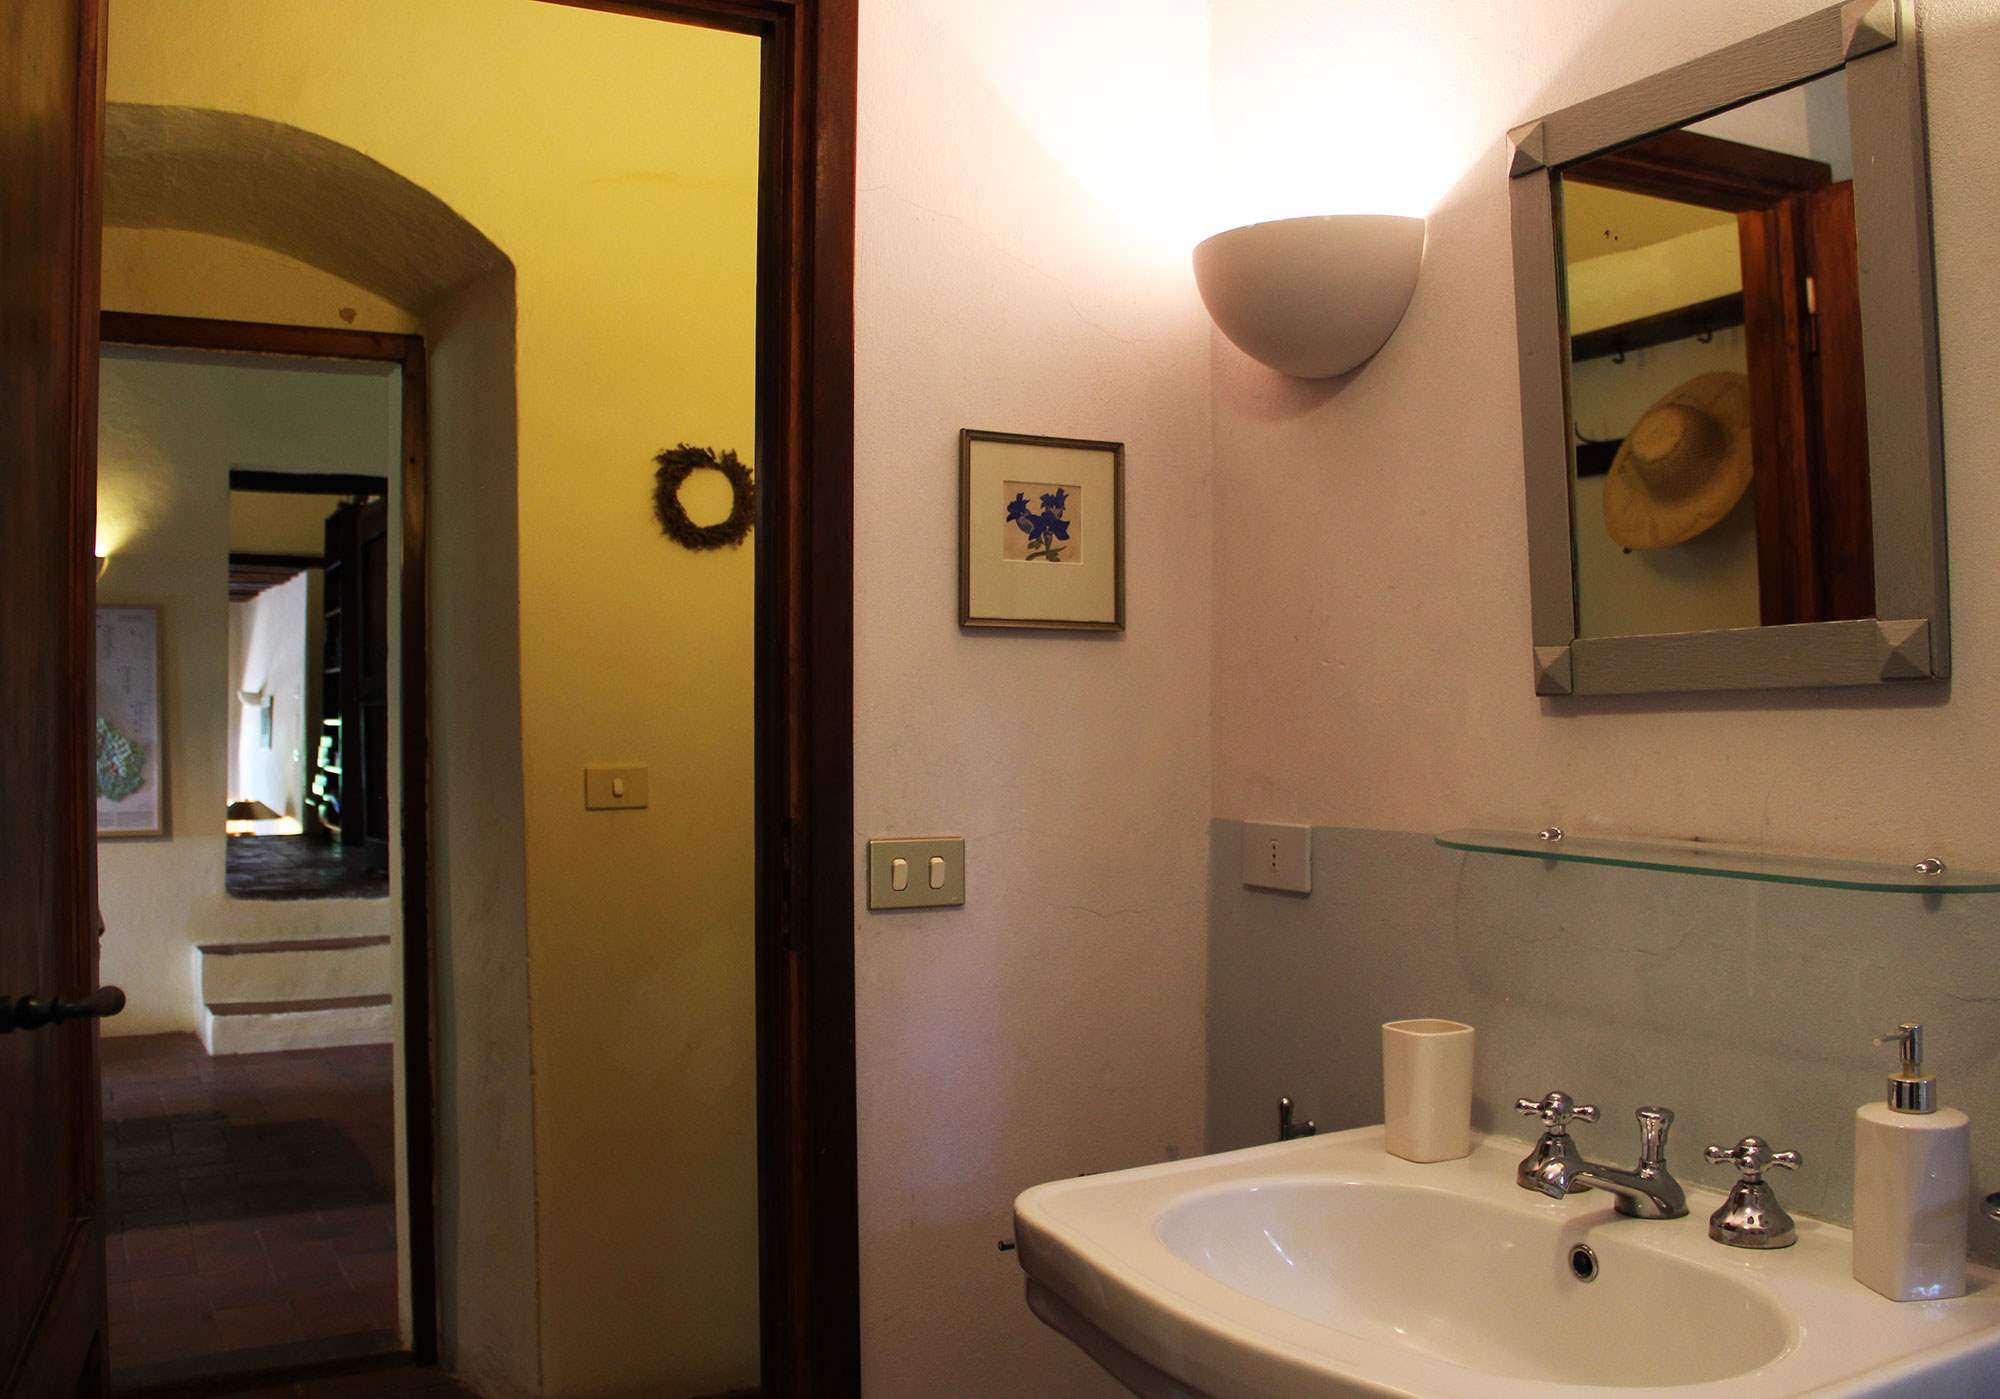 Villa Giacinto, 6 Bedroom rate, 6 bedroom villa in Chianti & Countryside, Tuscany Photo #23